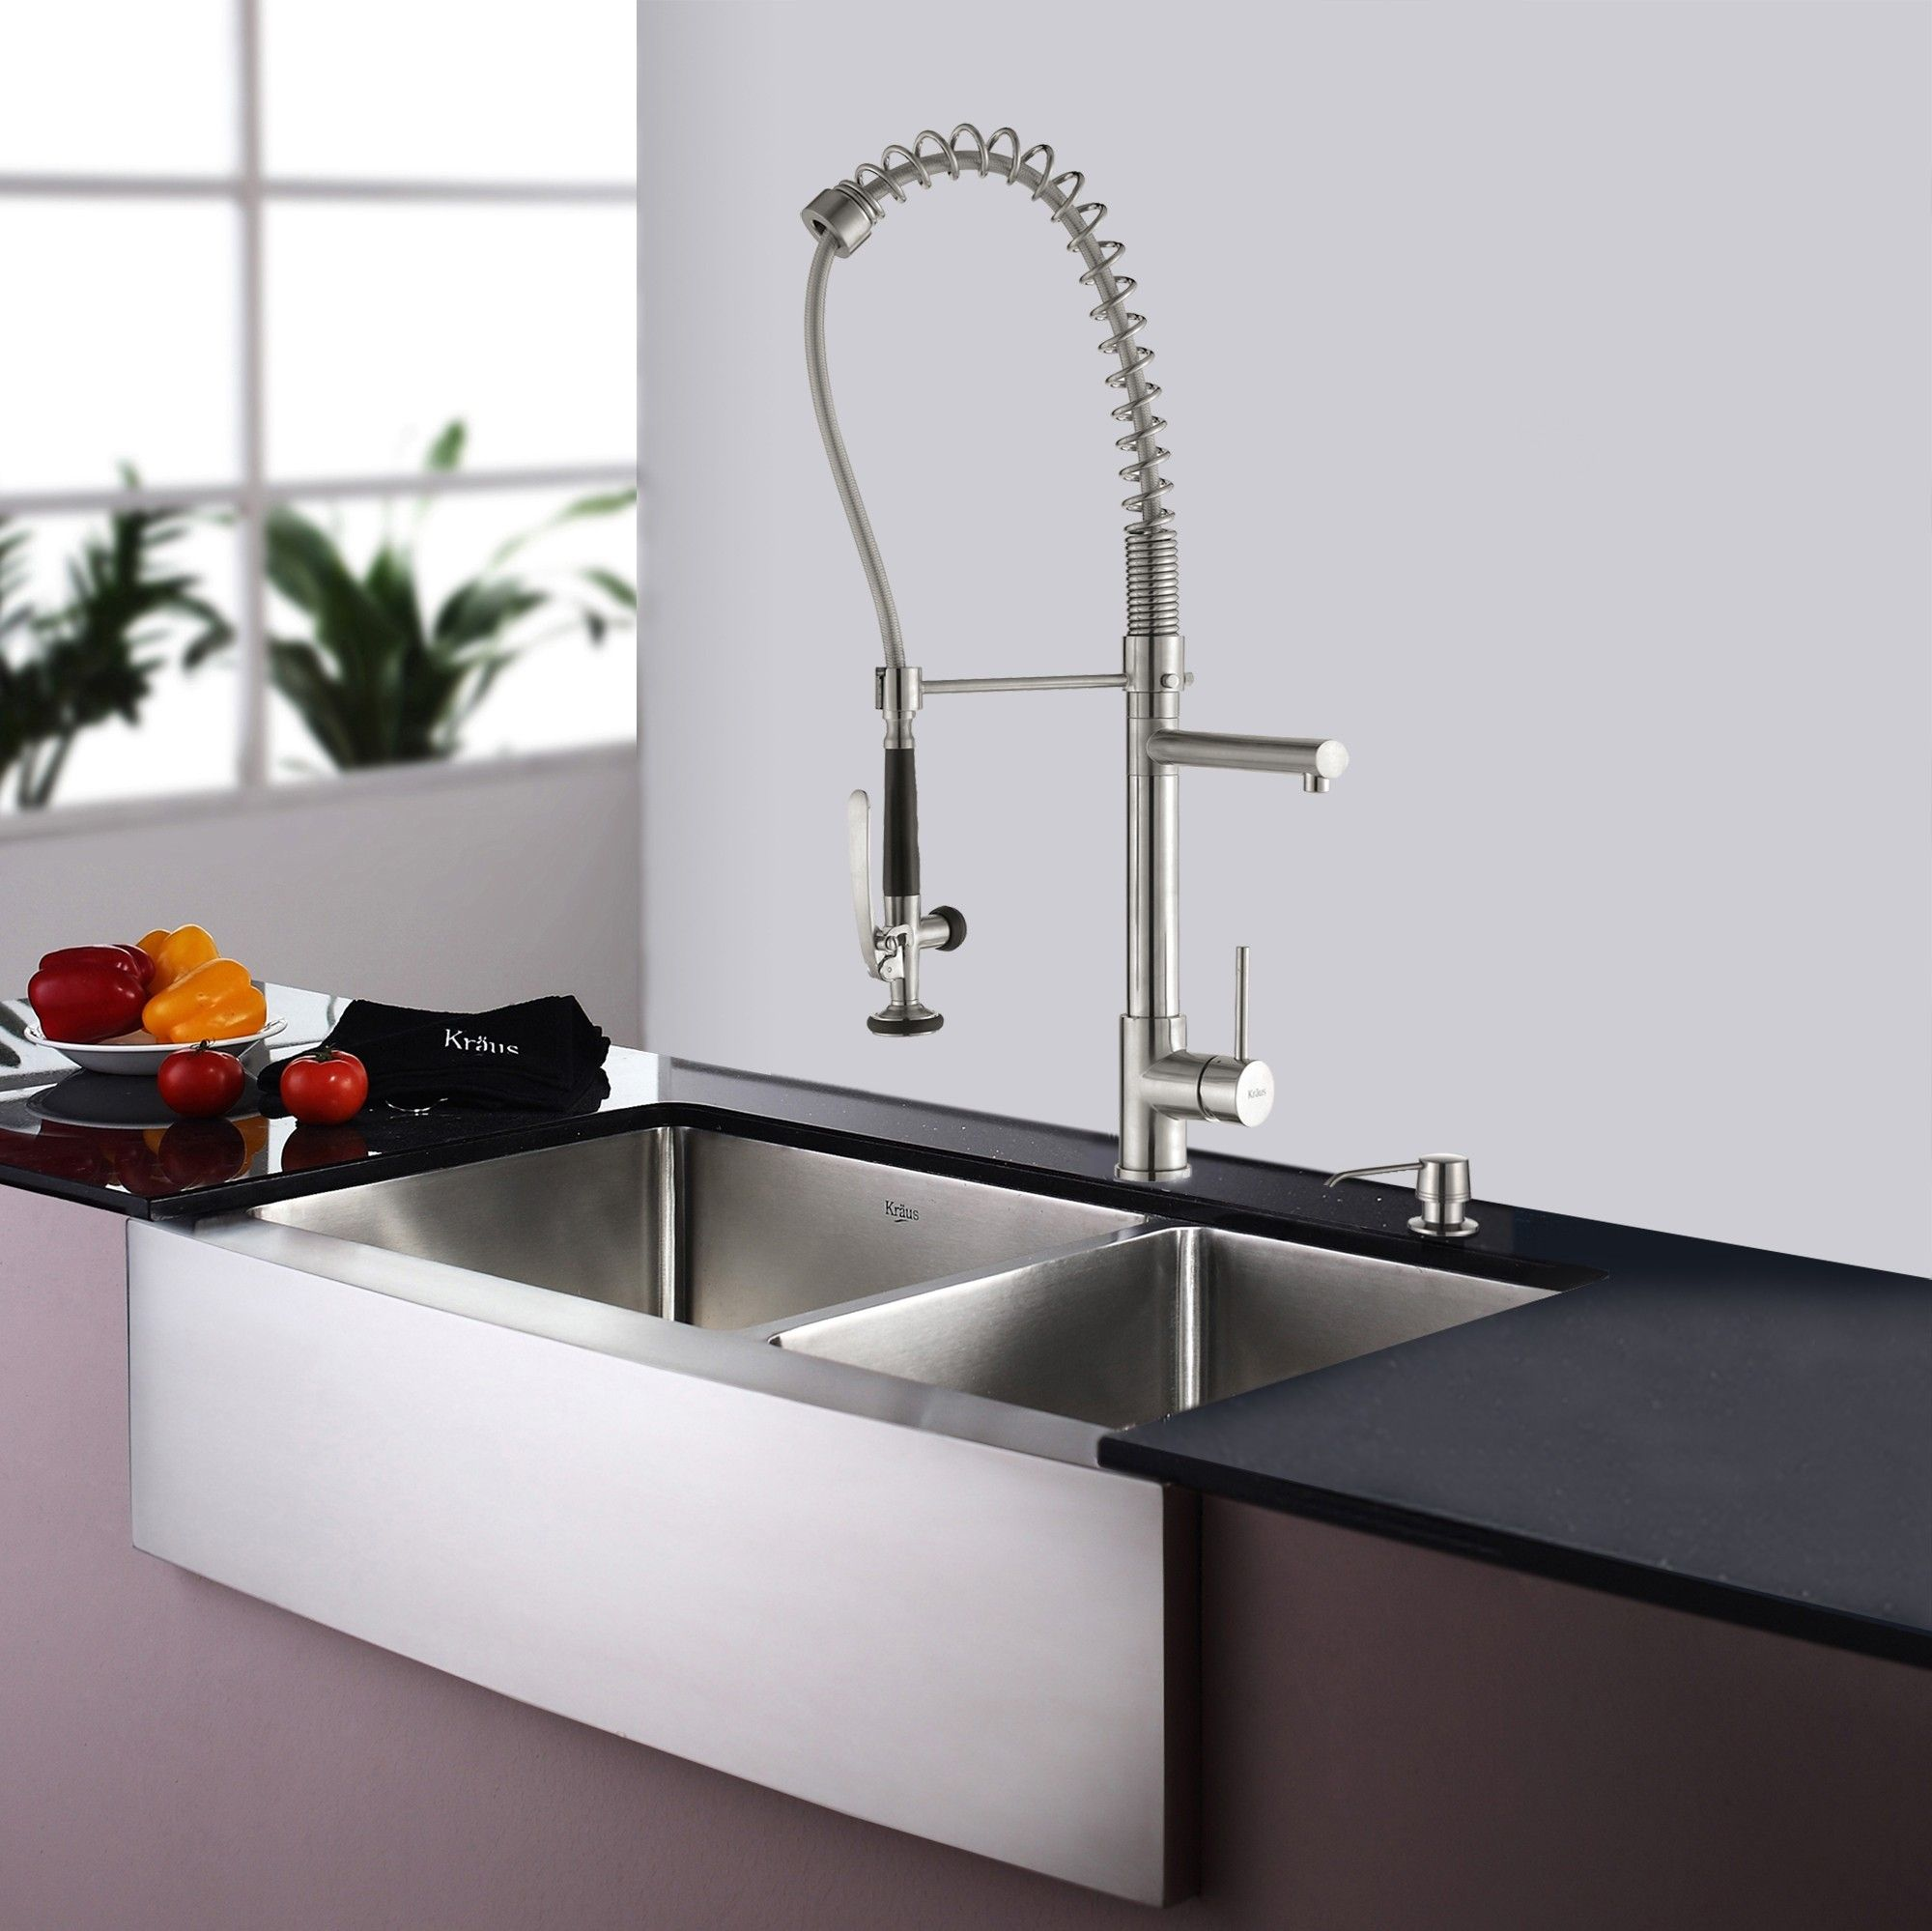 Kitchen faucet with handspray stainless steel color latulu